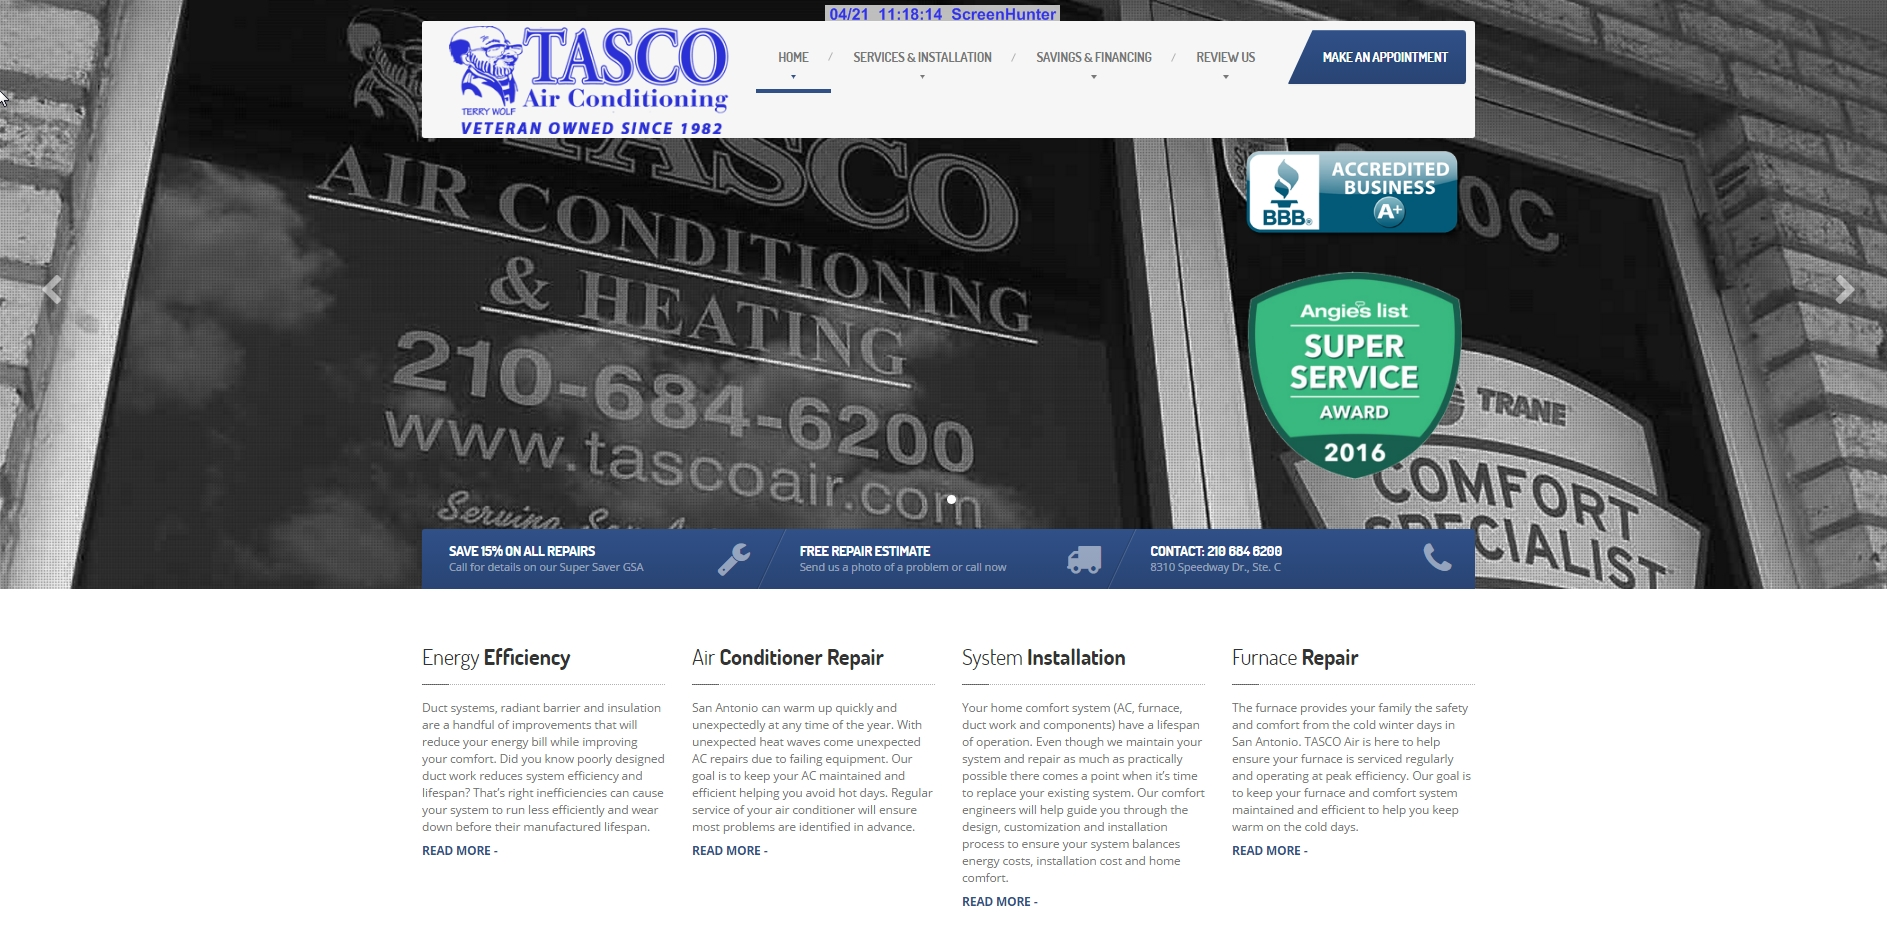 mccrossen marketing tasco air website homepage